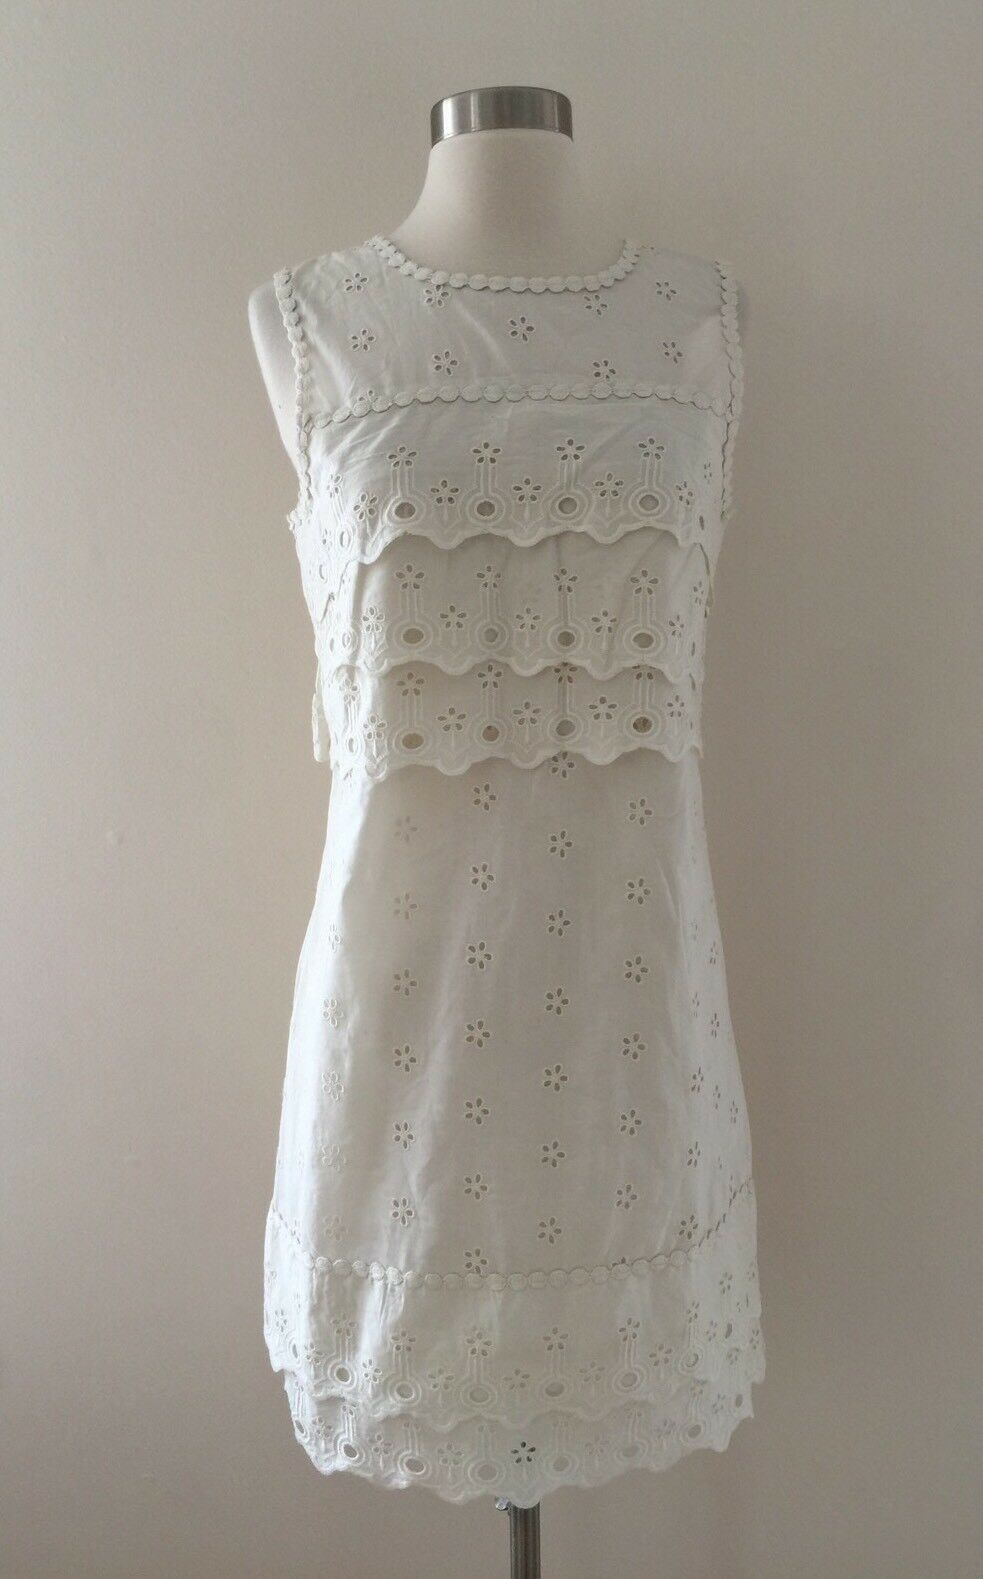 New J.Crew Tiered Eyelet Dress Lace Shift Ivory Size 00 G8475  98